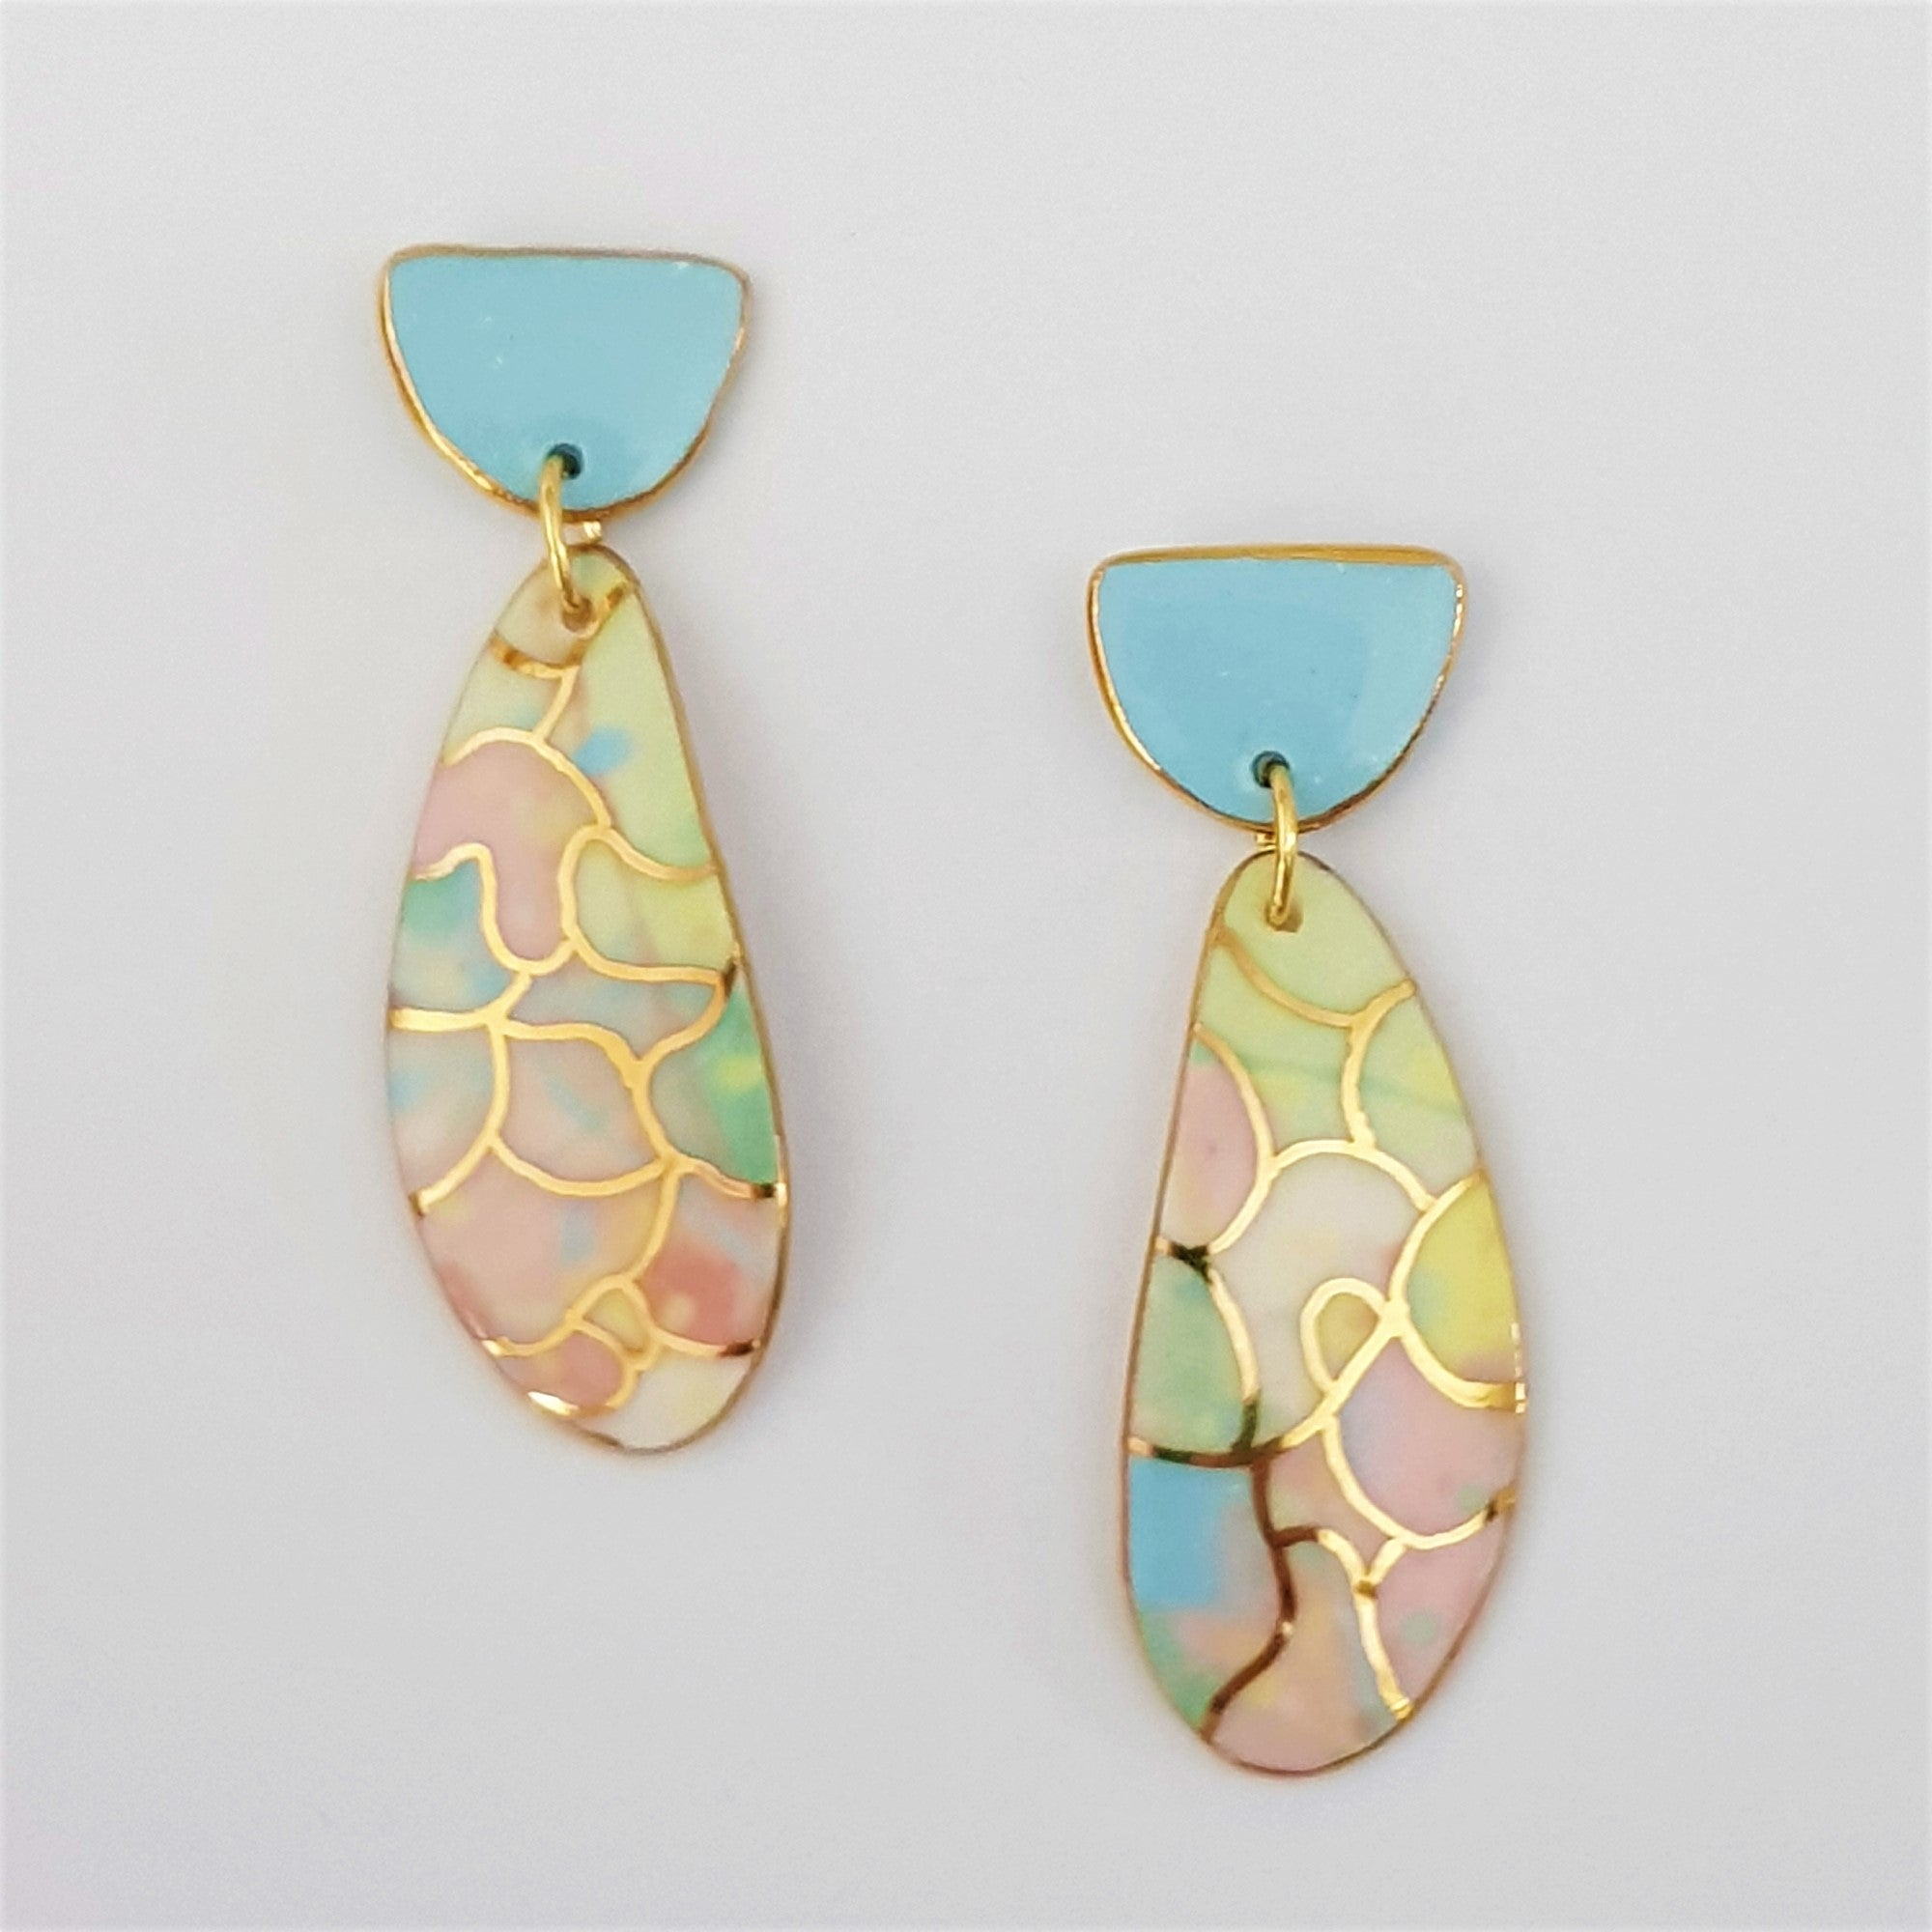 Double drop earrings. Feminine soft pastels with gold highlights.